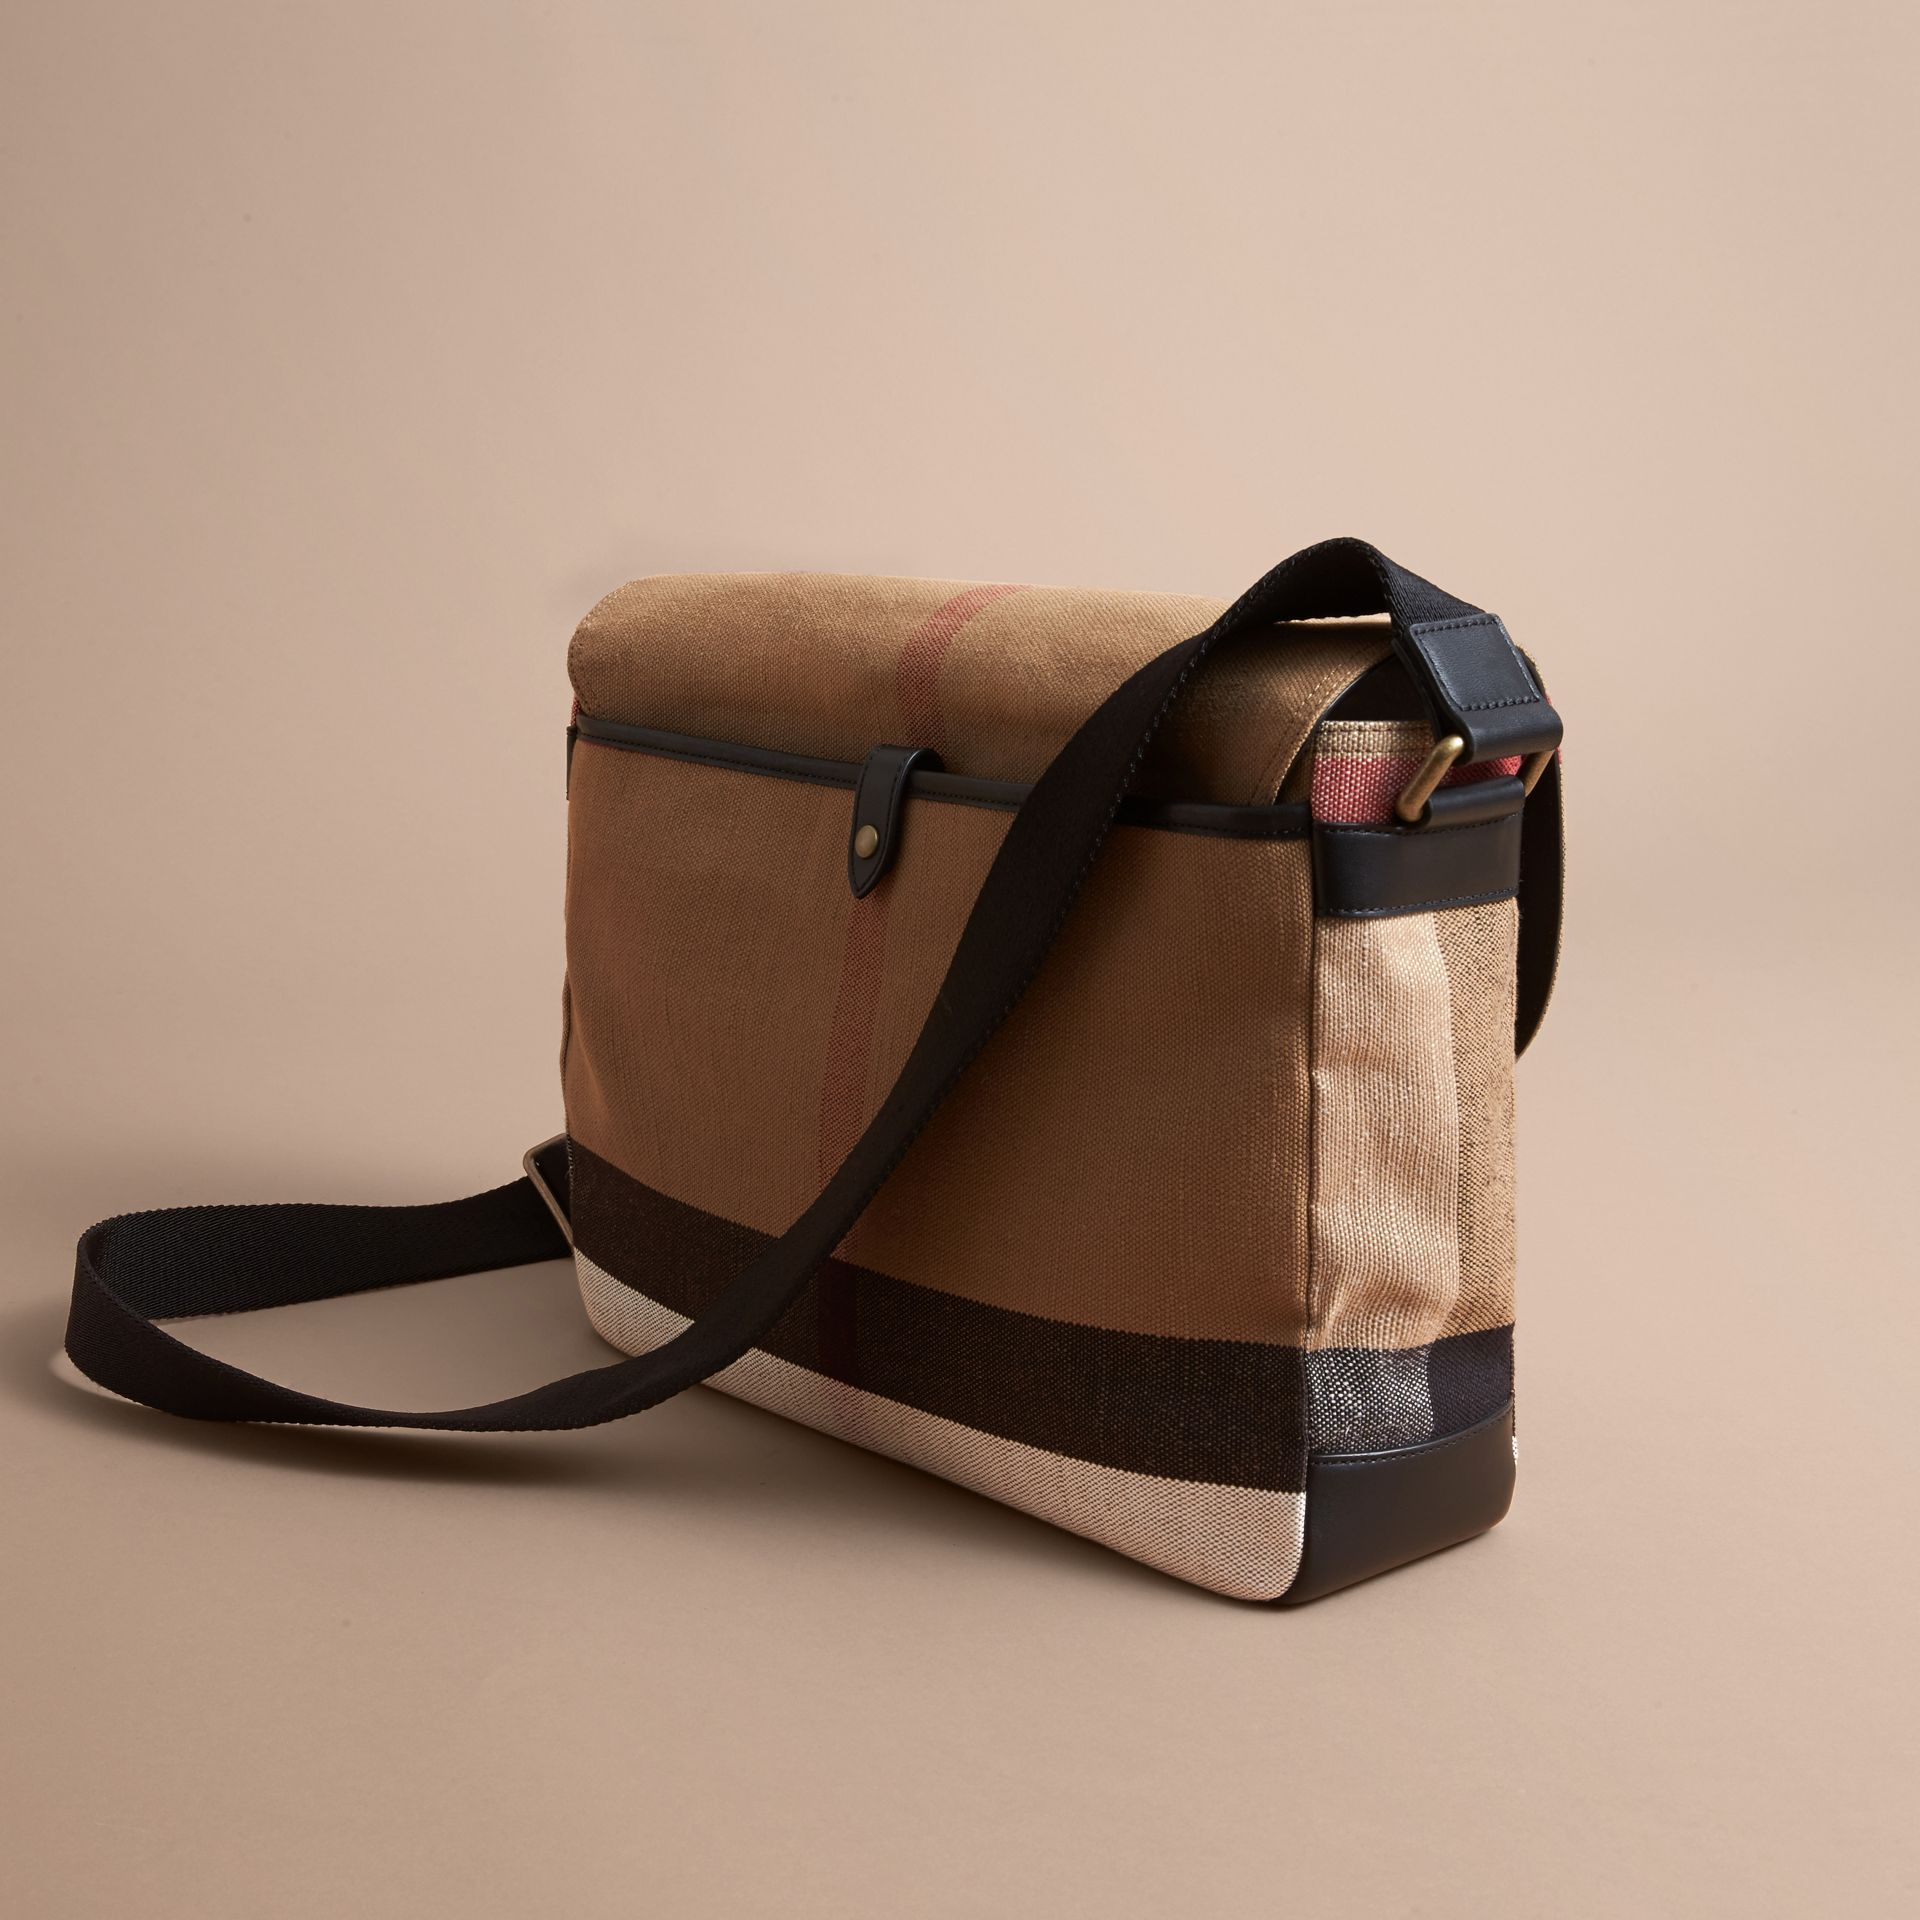 Large Leather Trim Canvas Check Messenger Bag in Black - Men | Burberry United Kingdom - gallery image 4